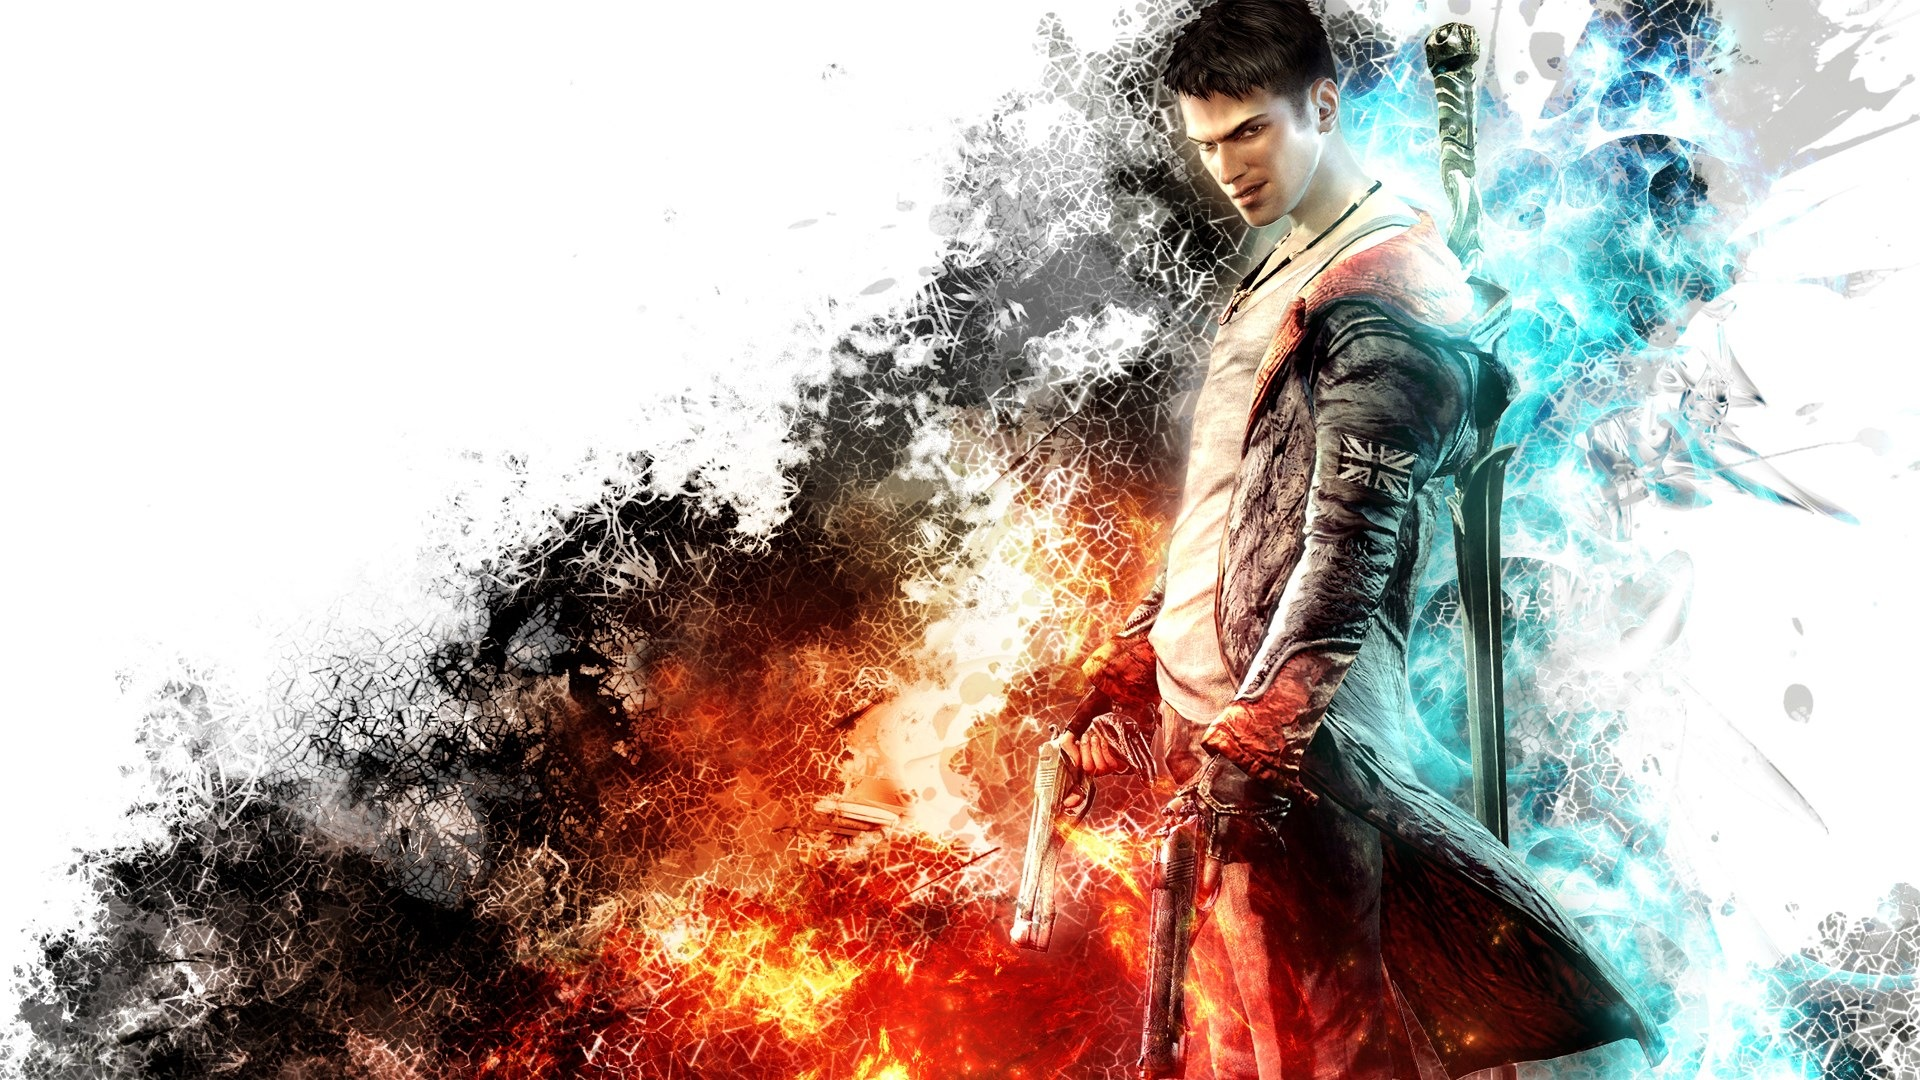 Devil May Cry Wallpaper 1920x1080 67399